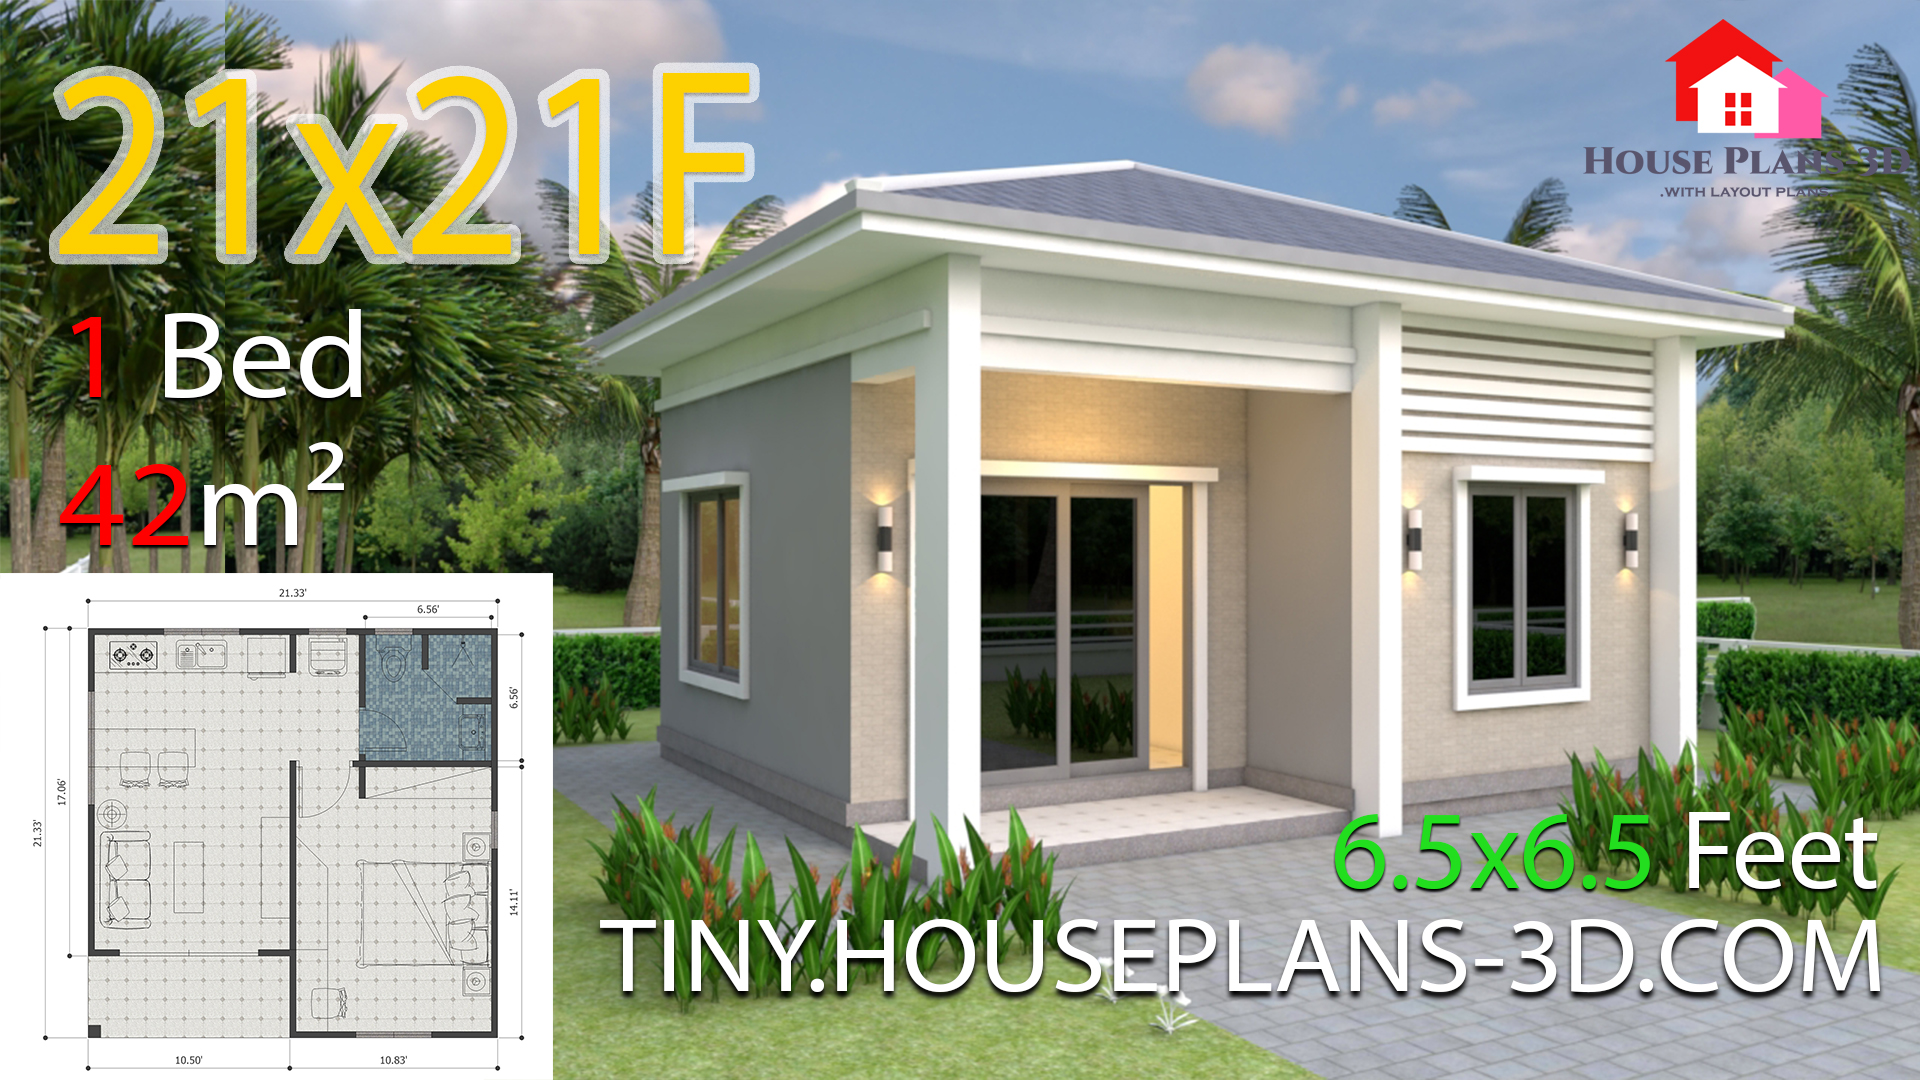 One Bedroom House Plans 21x21 Feet 6 5x6 5m Hip Roof Tiny House Plans